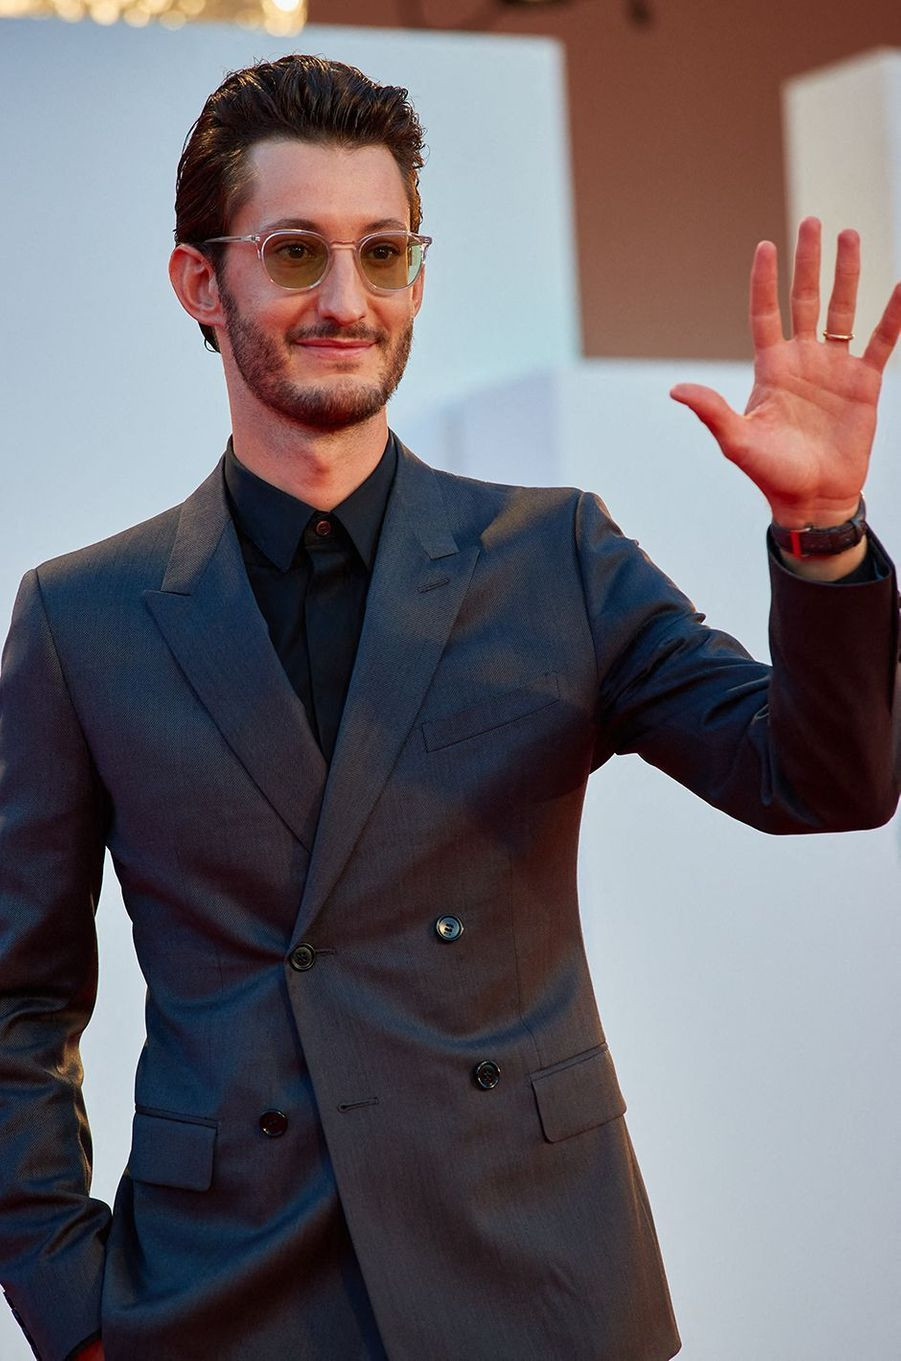 Pierre Niney sur le tapis rouge de la projection du film «Amants» lors de la Mostra de Venise le 3 septembre 2020